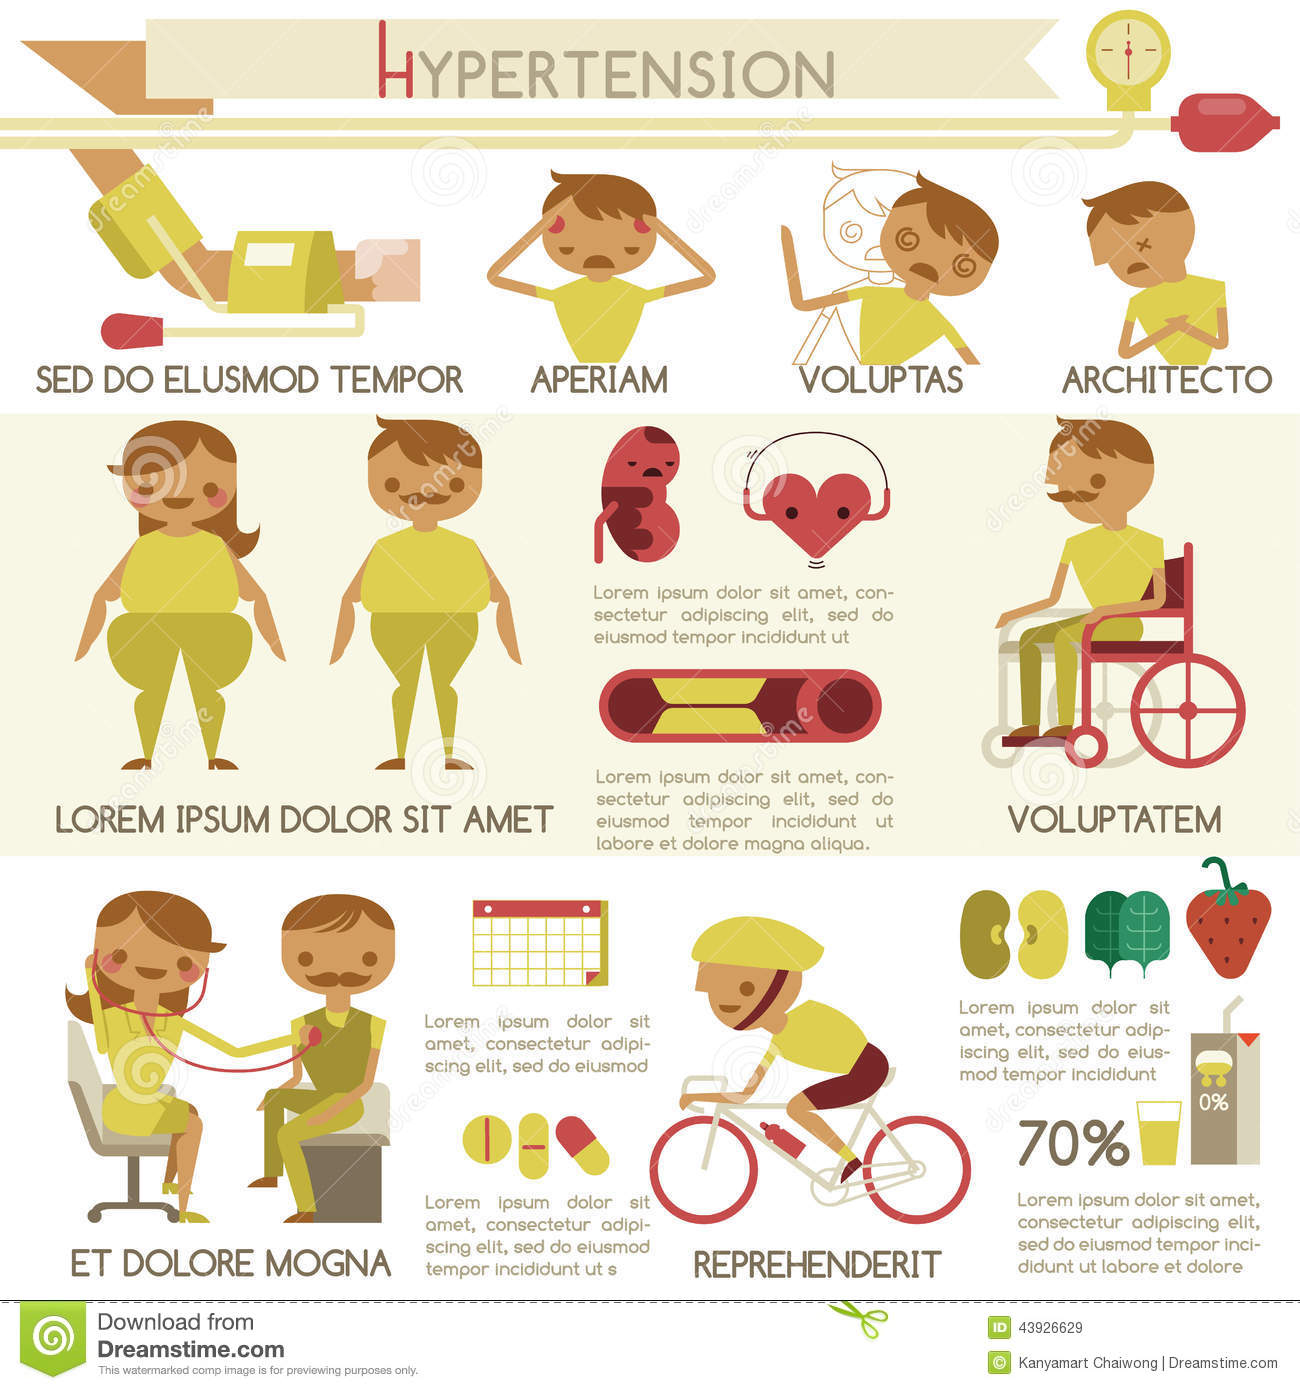 hypertension health care and medical infographic stock